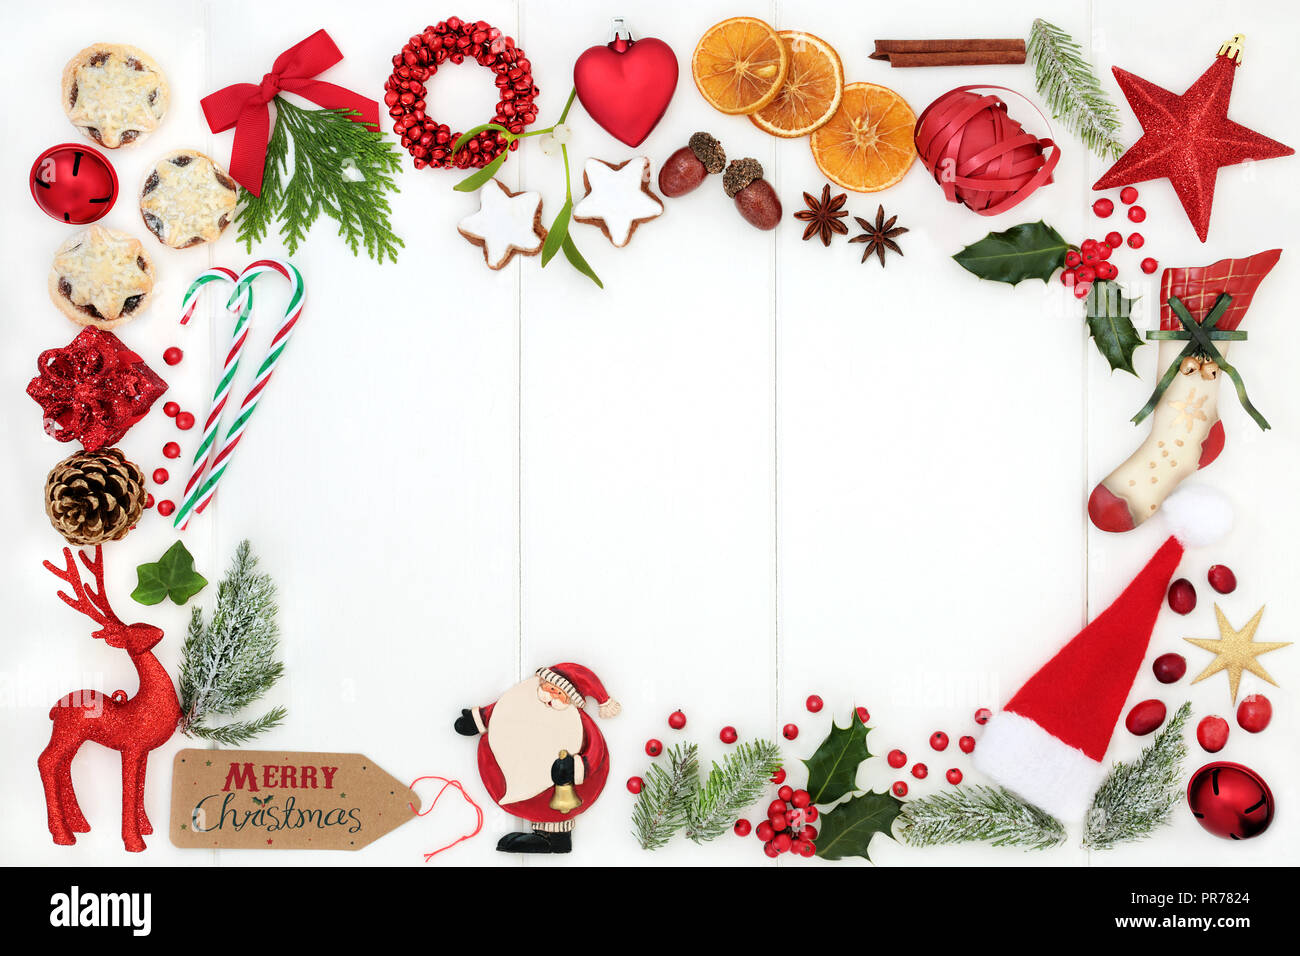 Christmas background border composition with traditional symbols of bauble tree decorations, candy canes, mince pies, fruit, spices & winter flora. - Stock Image